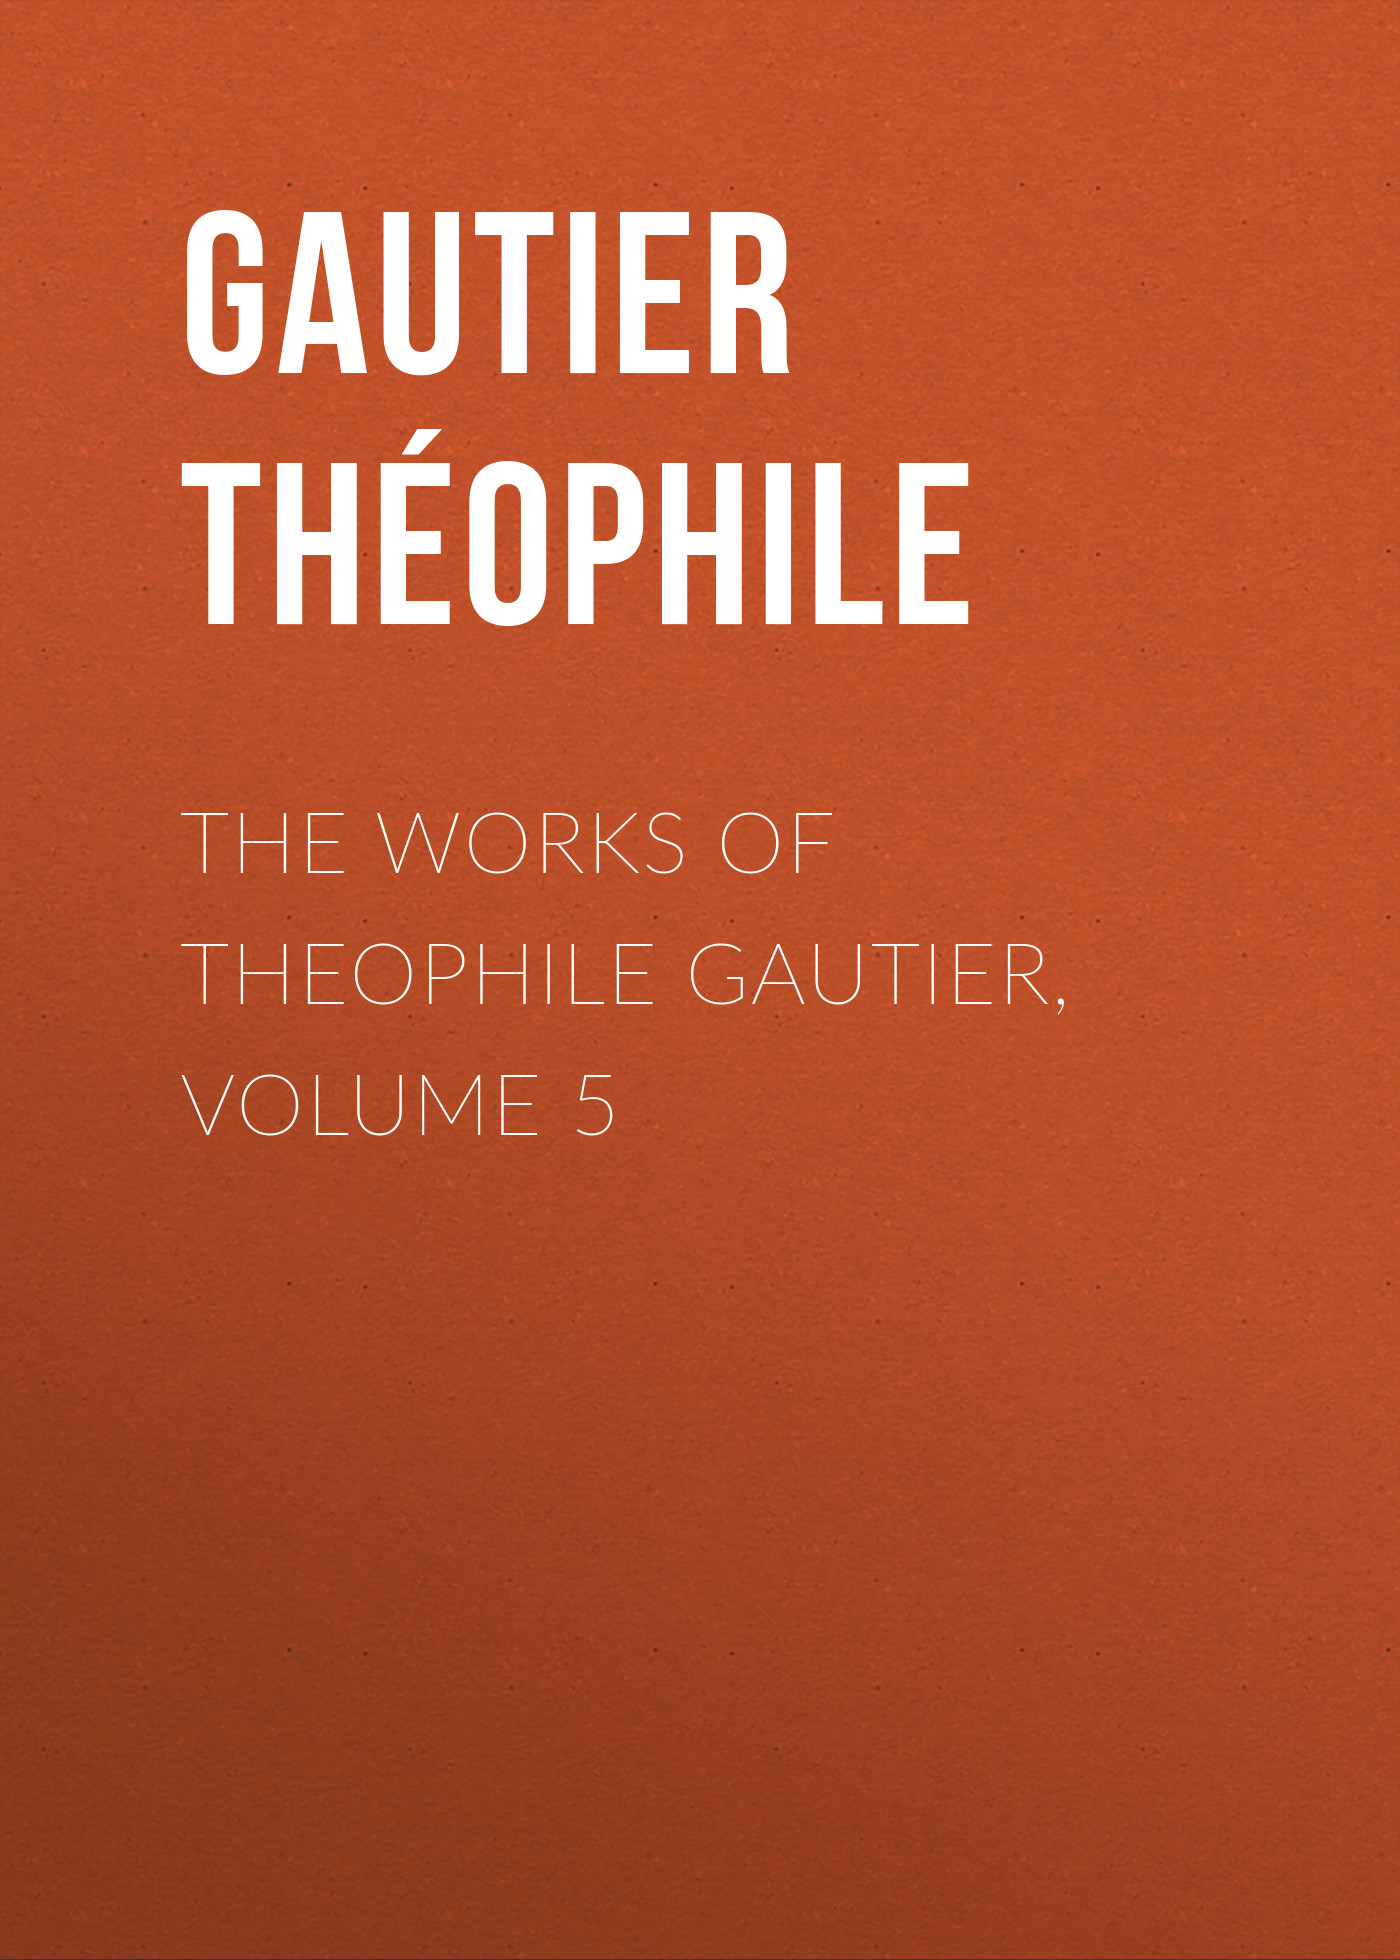 Gautier Théophile The Works of Theophile Gautier, Volume 5 early works volume 1